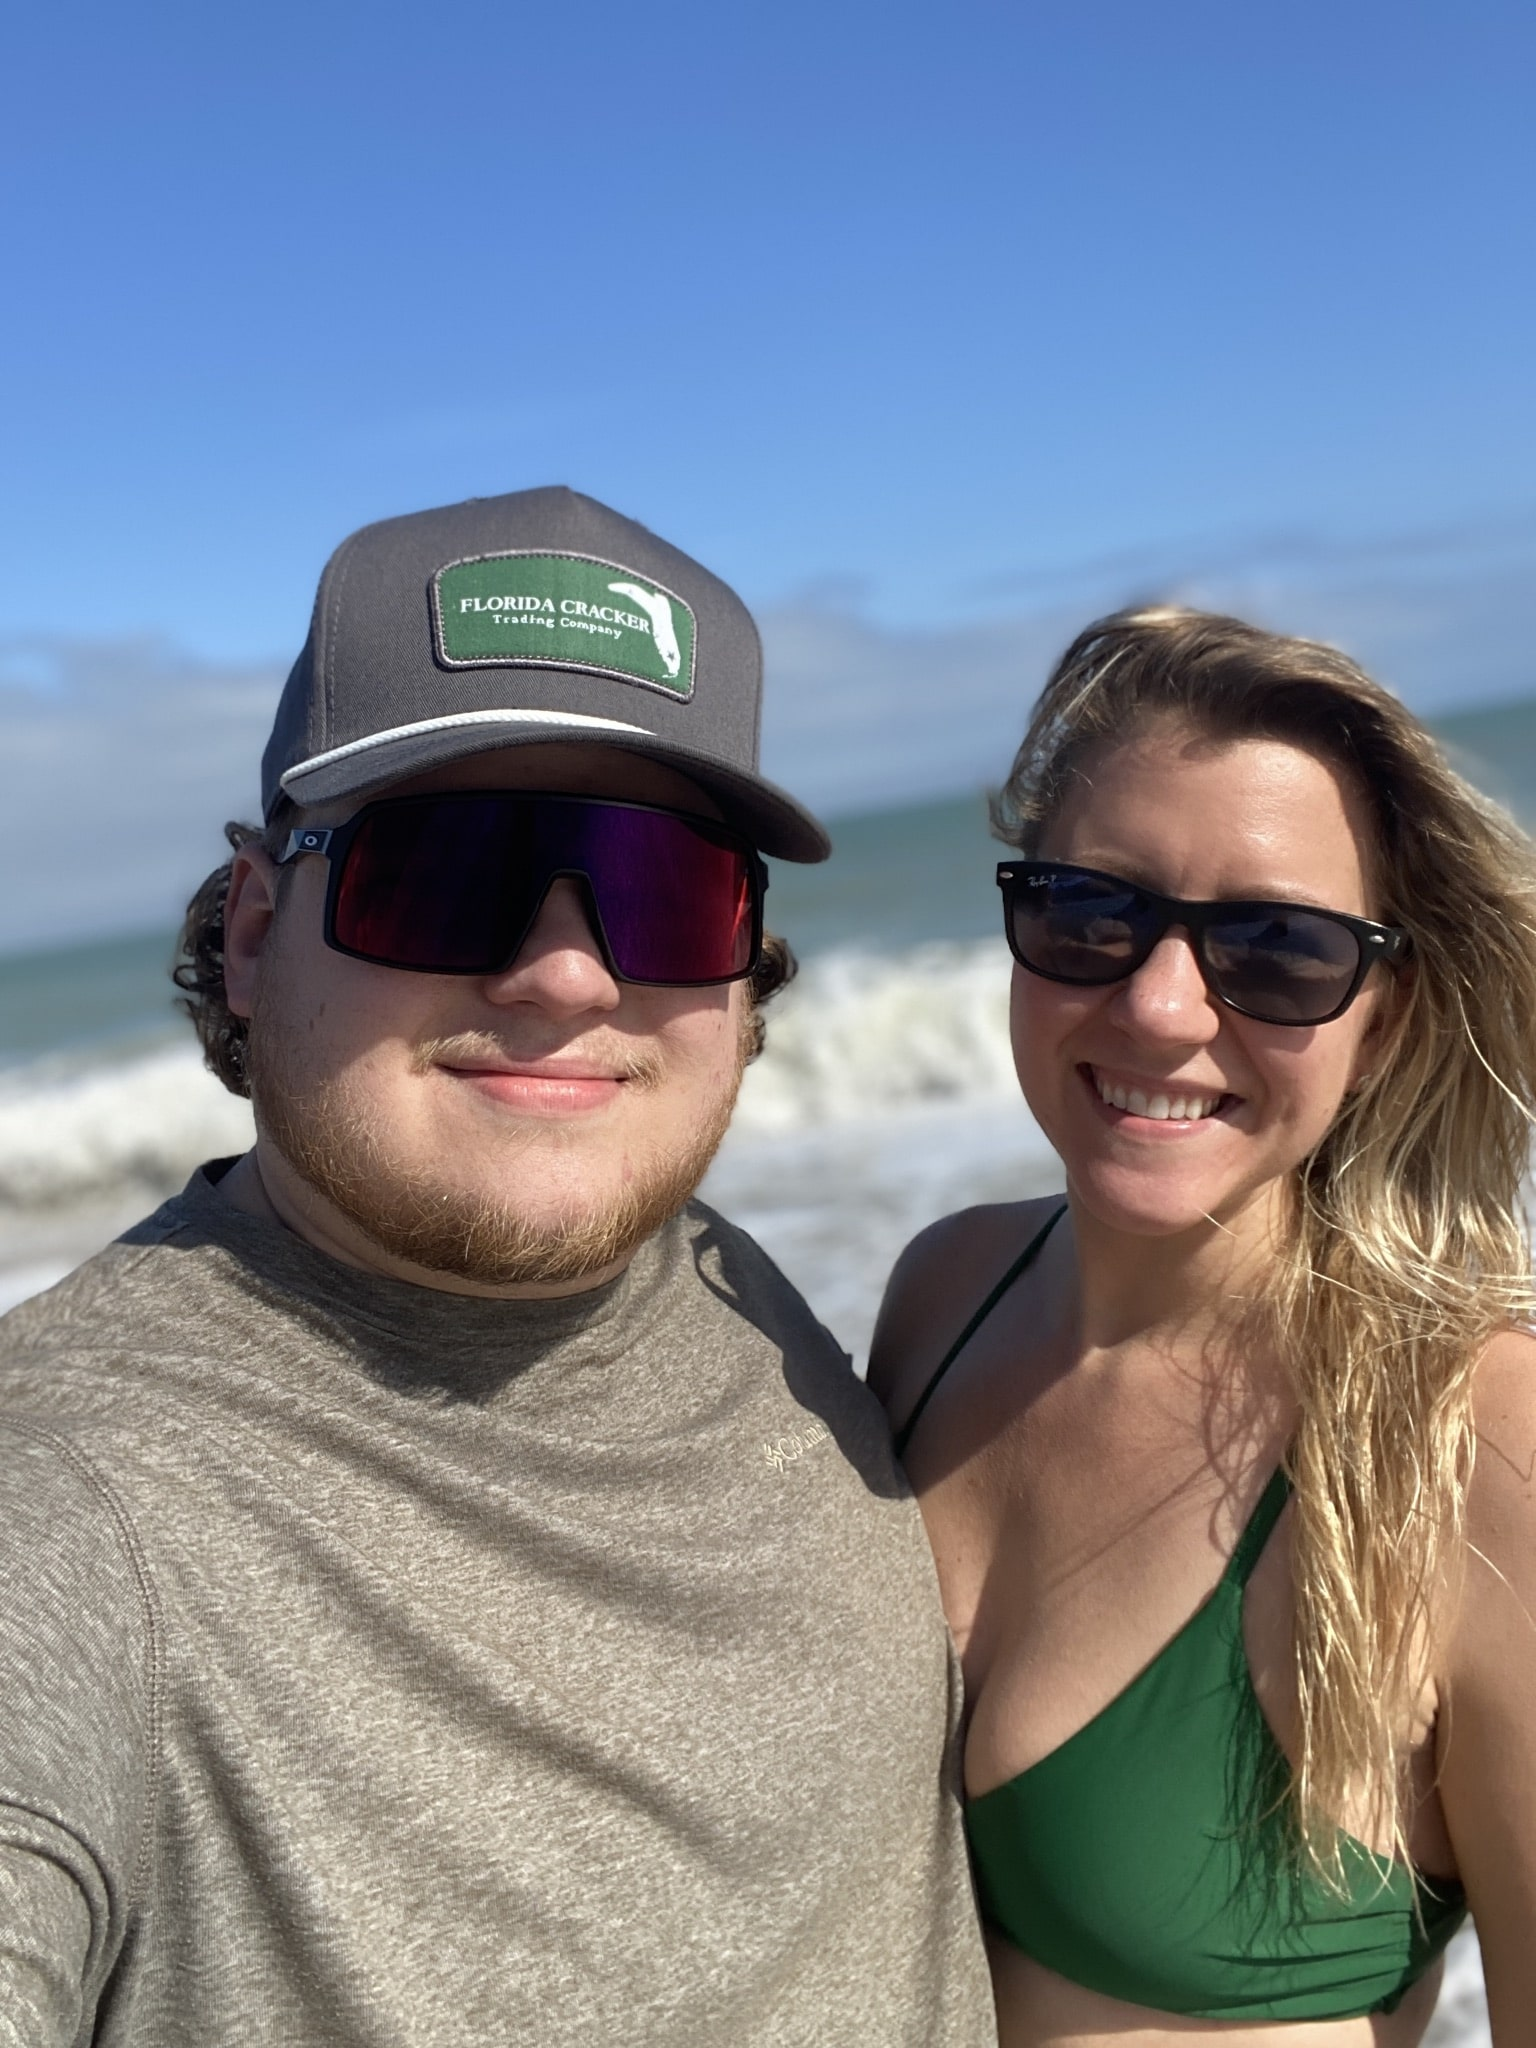 couple wears sunglasses standing next to each other for picture on the beach guy wearing grey shirt and girl wearing green bikini top